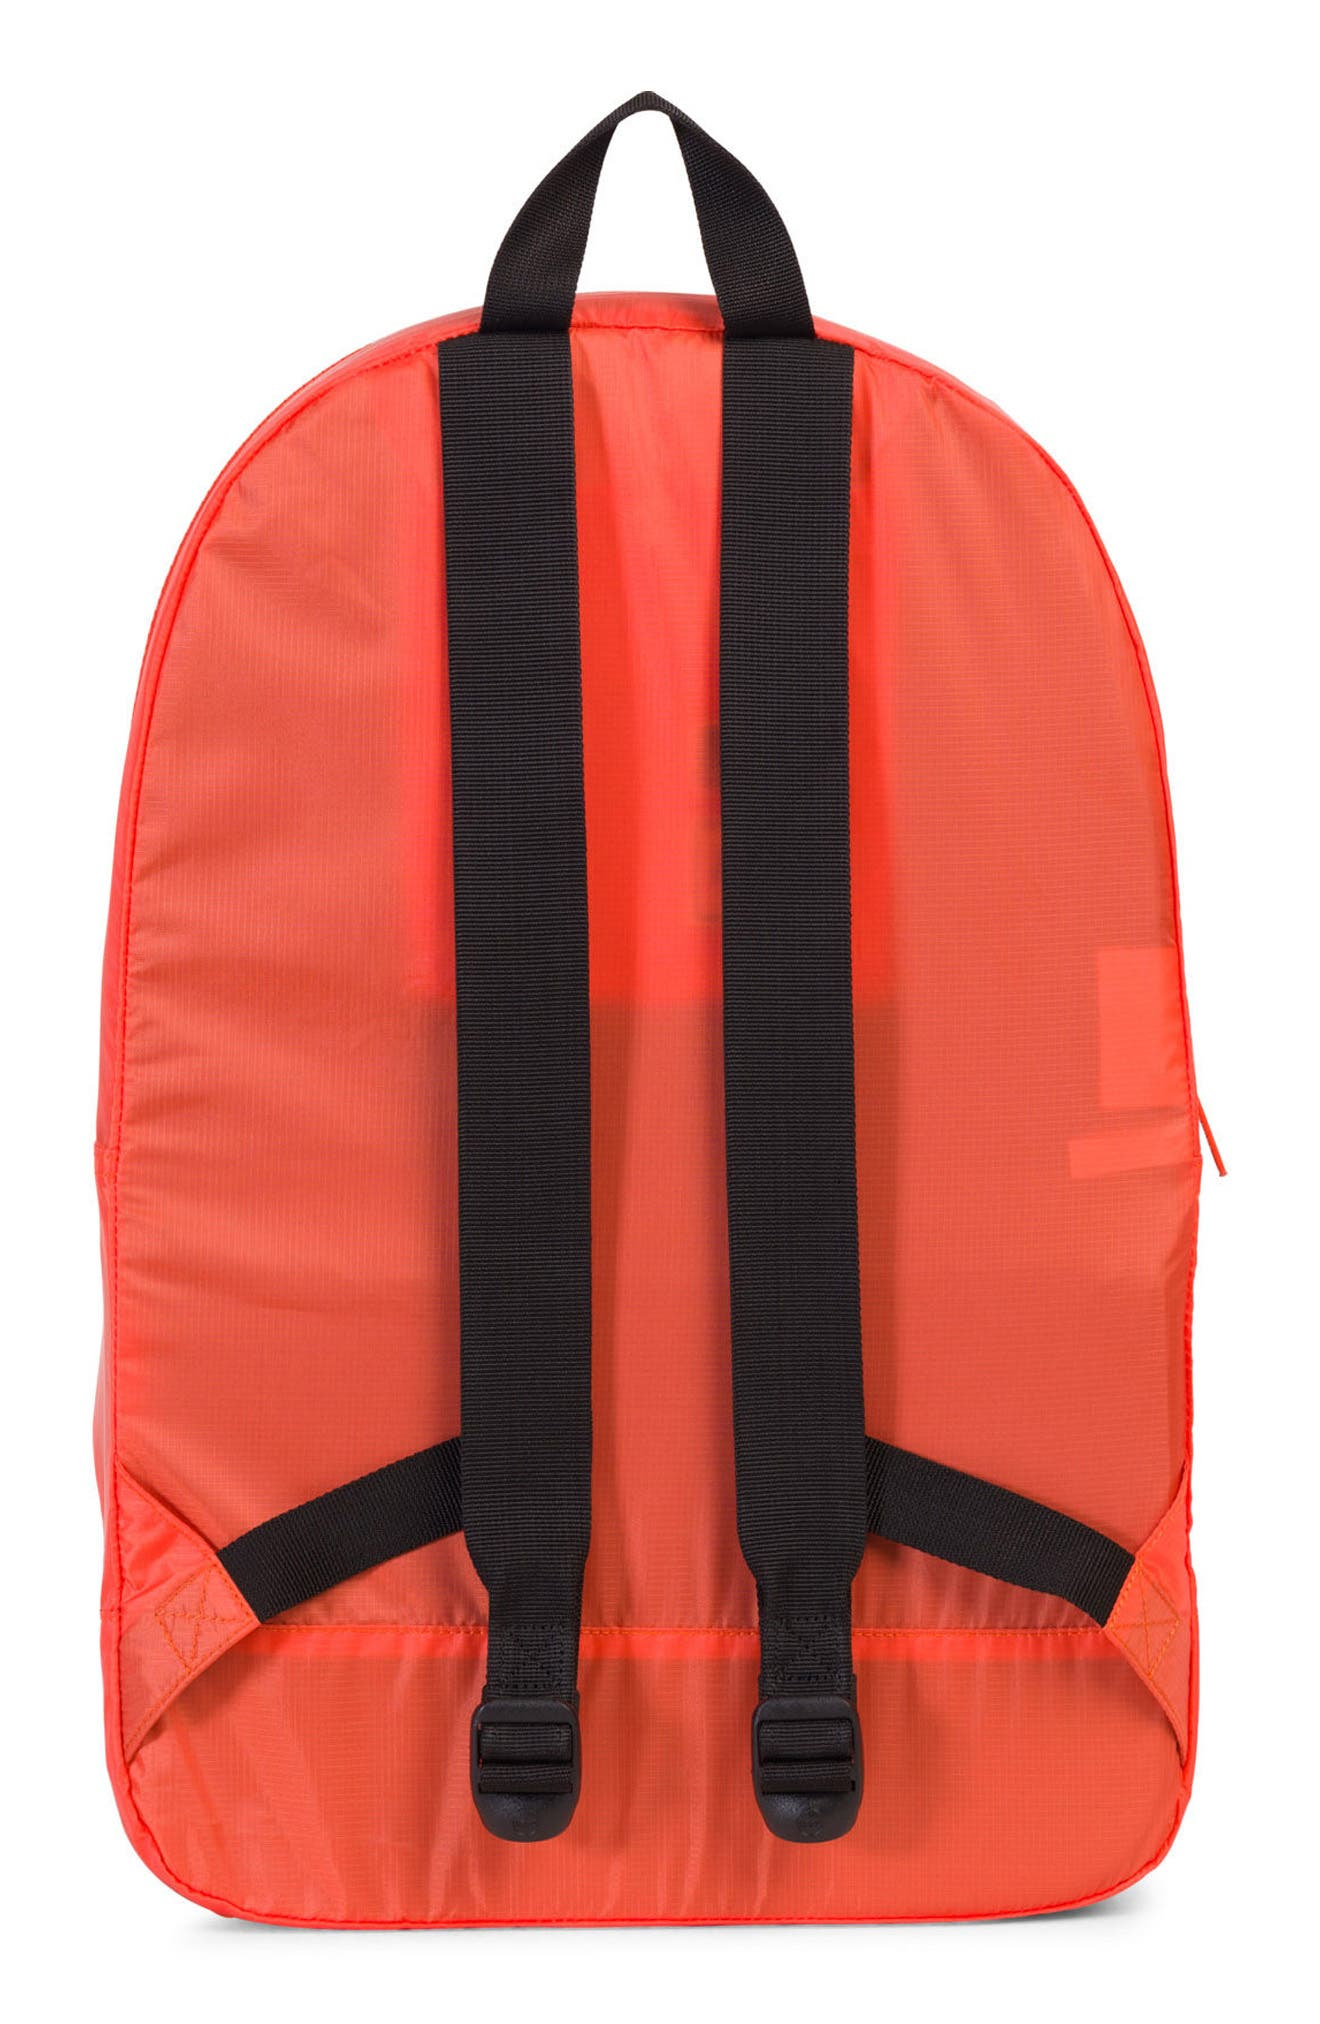 Packable - MLB American League Backpack,                             Alternate thumbnail 2, color,                             BALTIMORE ORIOLES